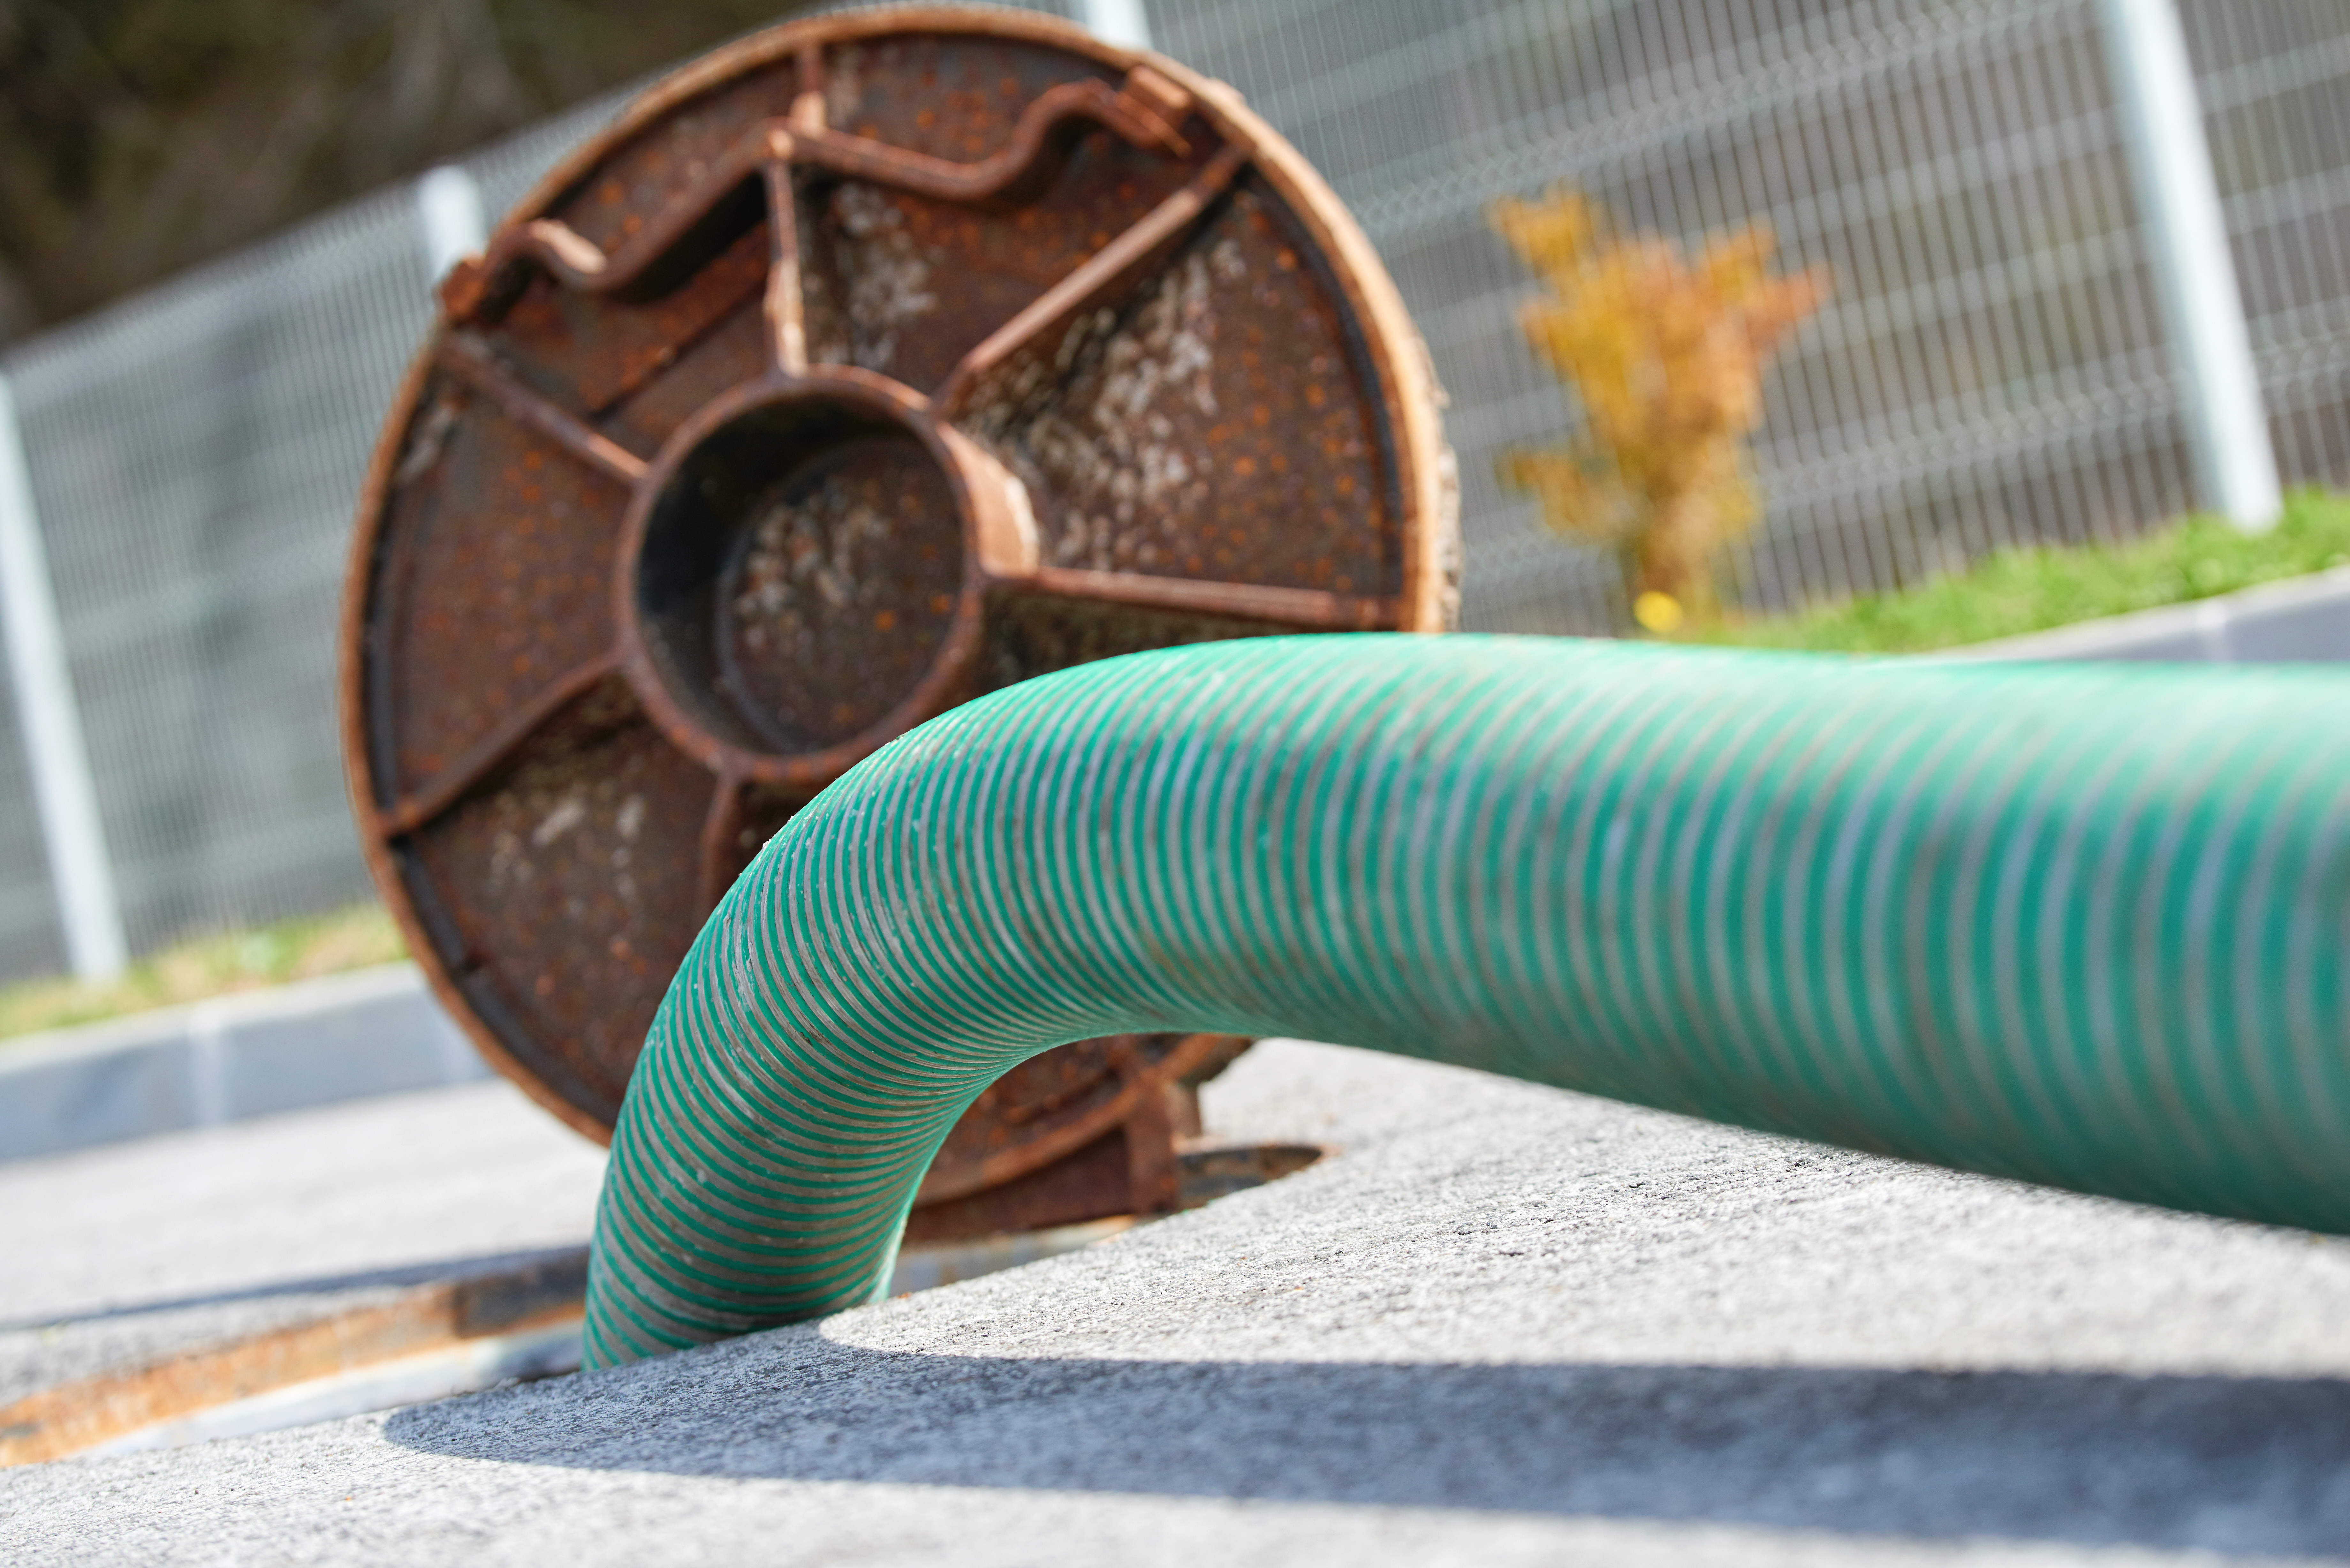 How to Stop Sewer Gas From Entering the House   Home Guides   SF Gate